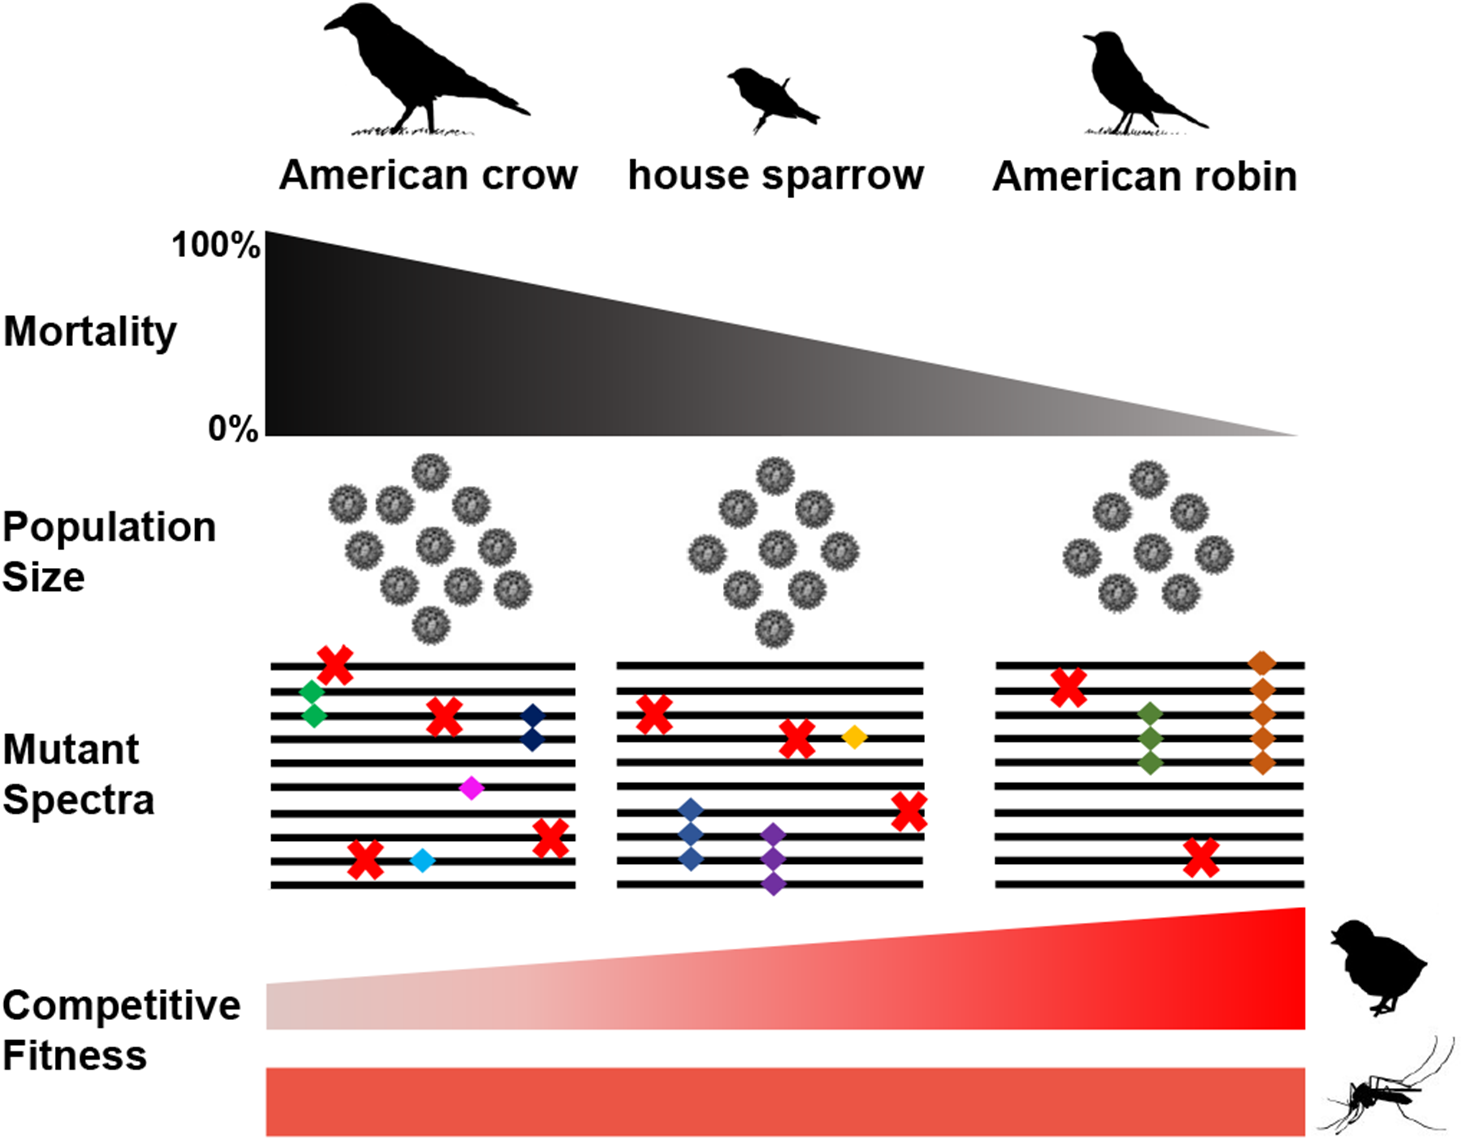 Species-specific composition of WNV populations and competitive fitness.